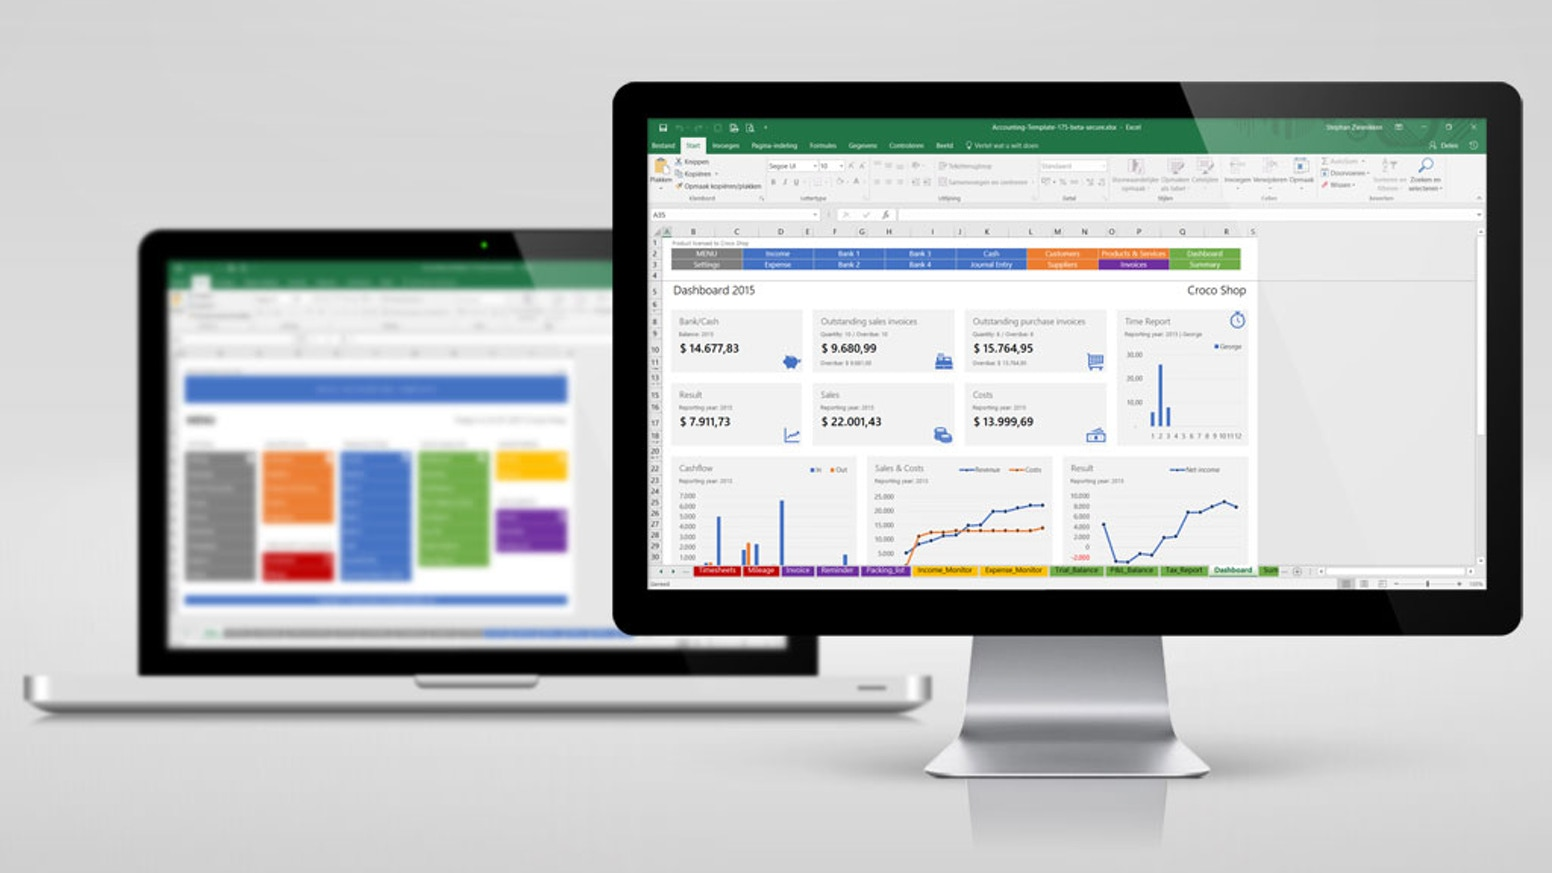 Excel accounting template by stephan zwanikken kickstarter the all in one accounting solution in excel for small business owners wajeb Choice Image